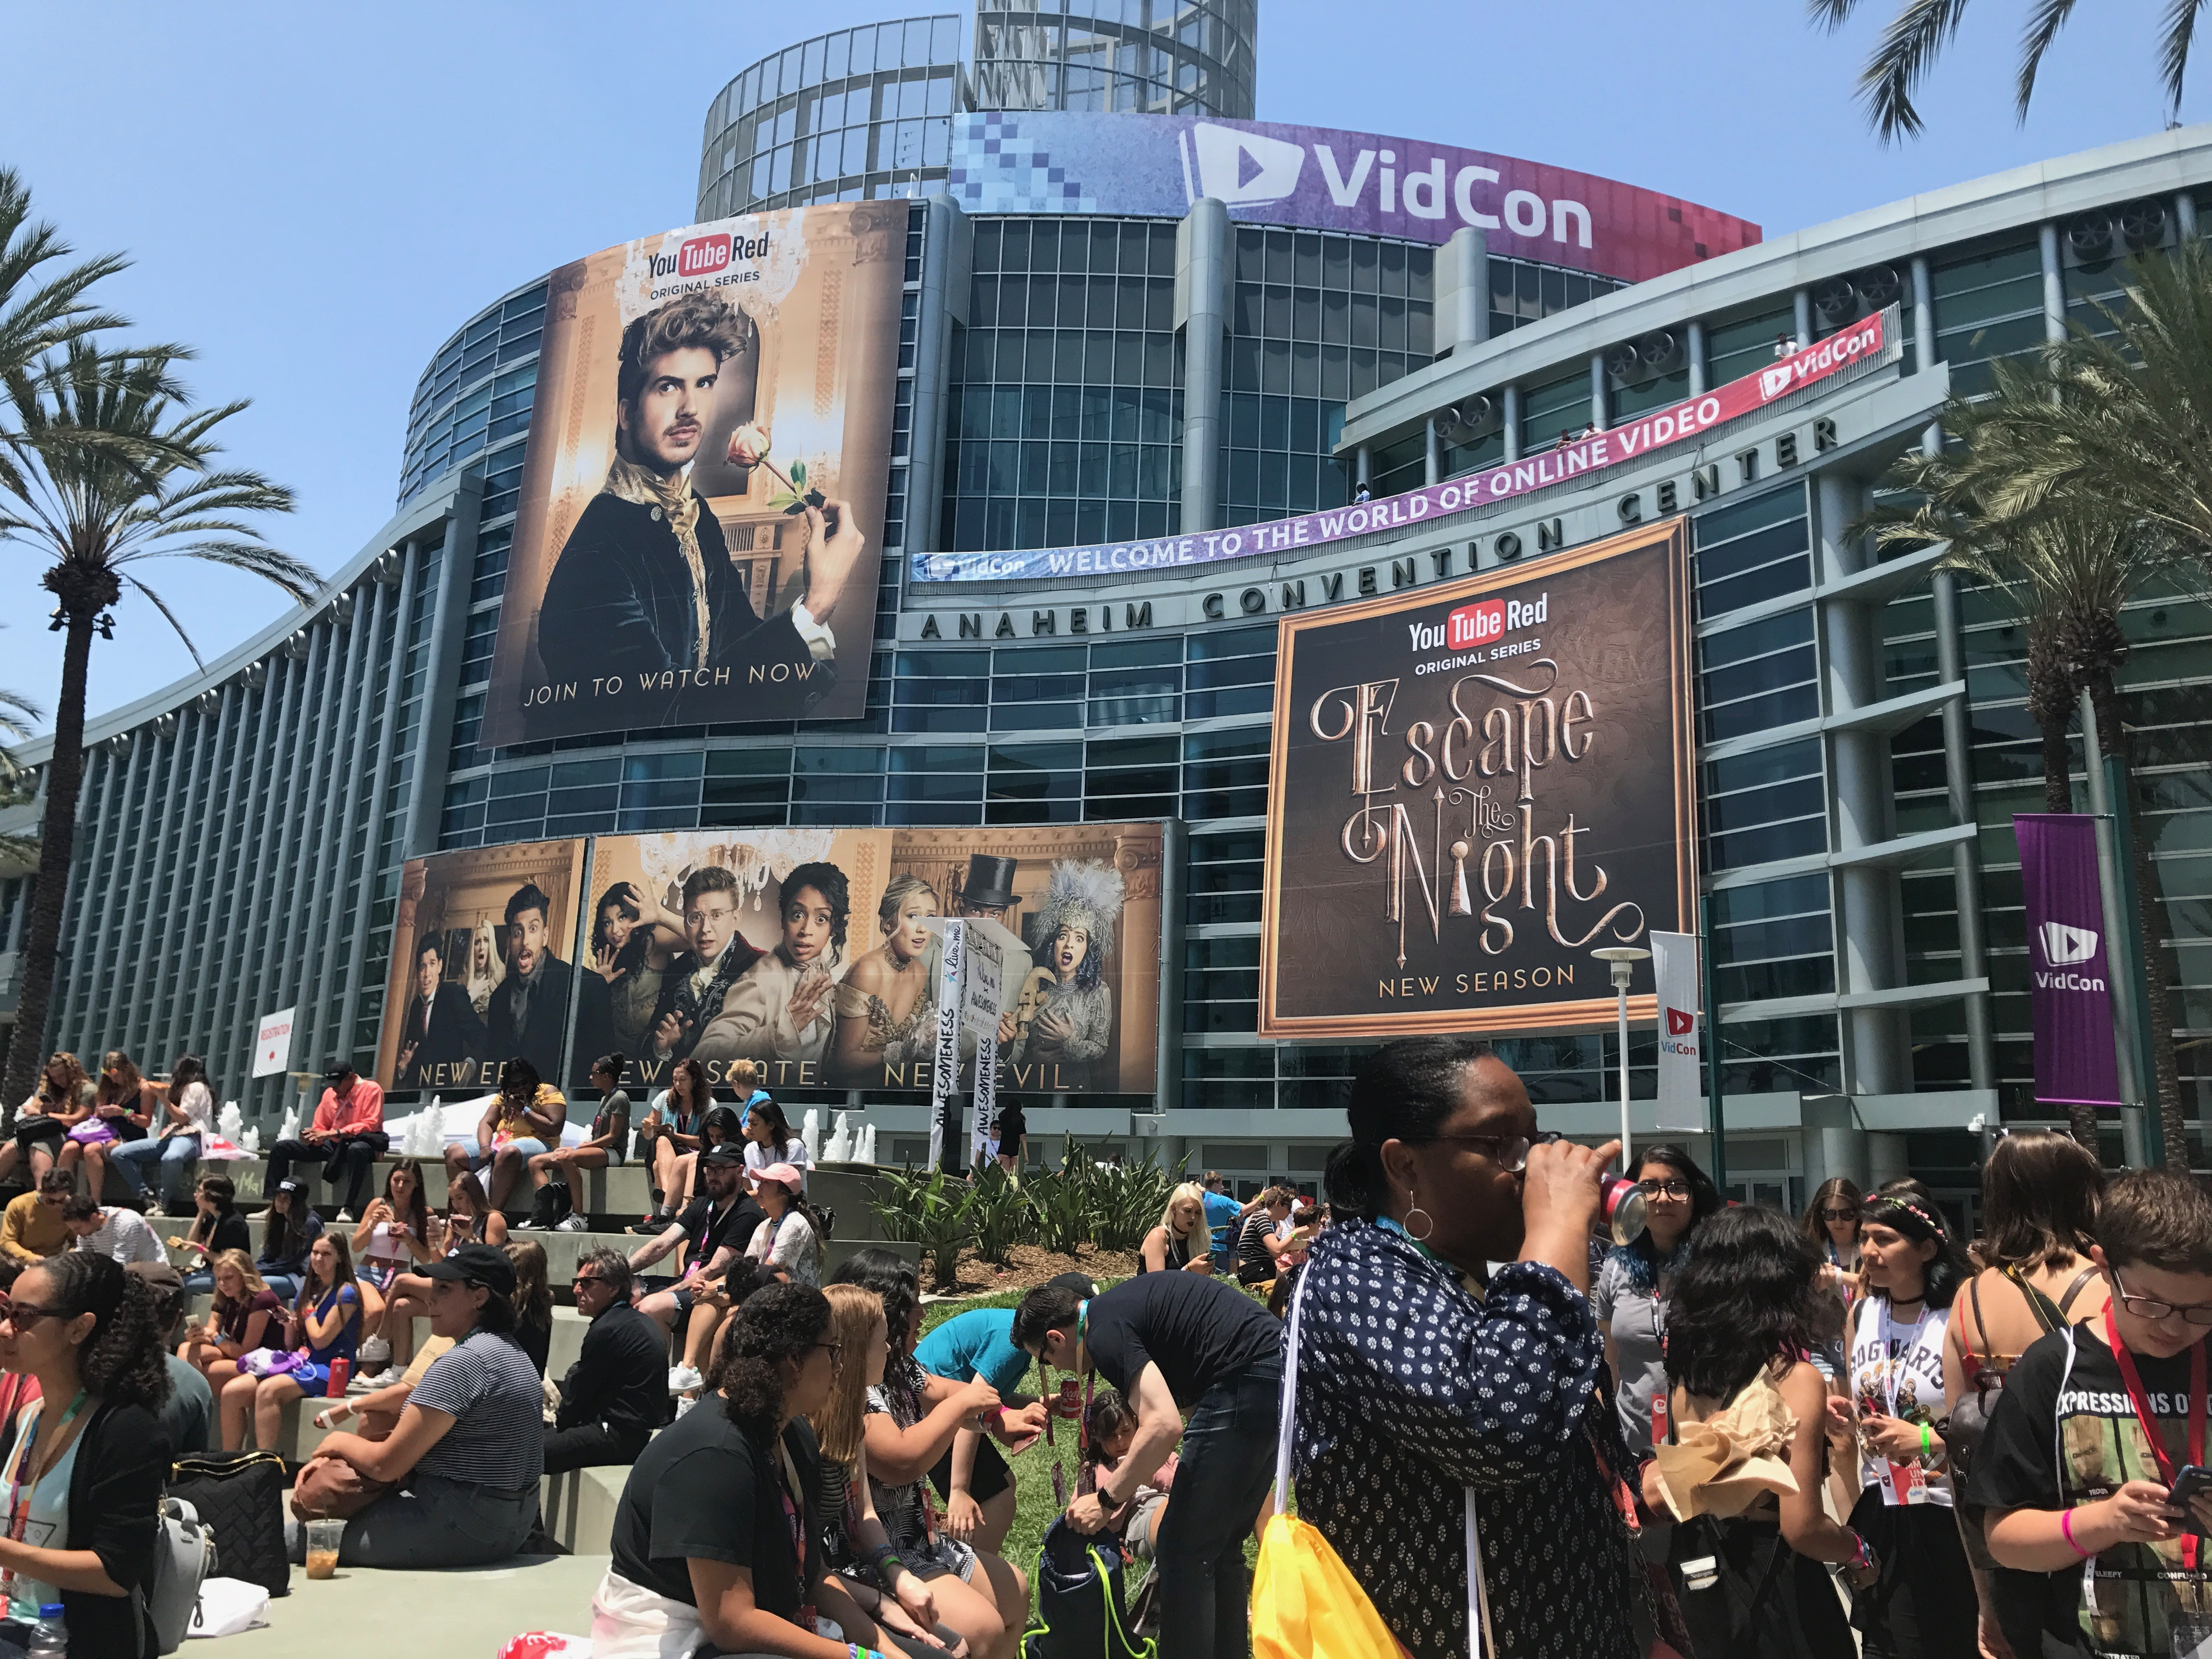 Influencers, Generation Z and VidCon 2017